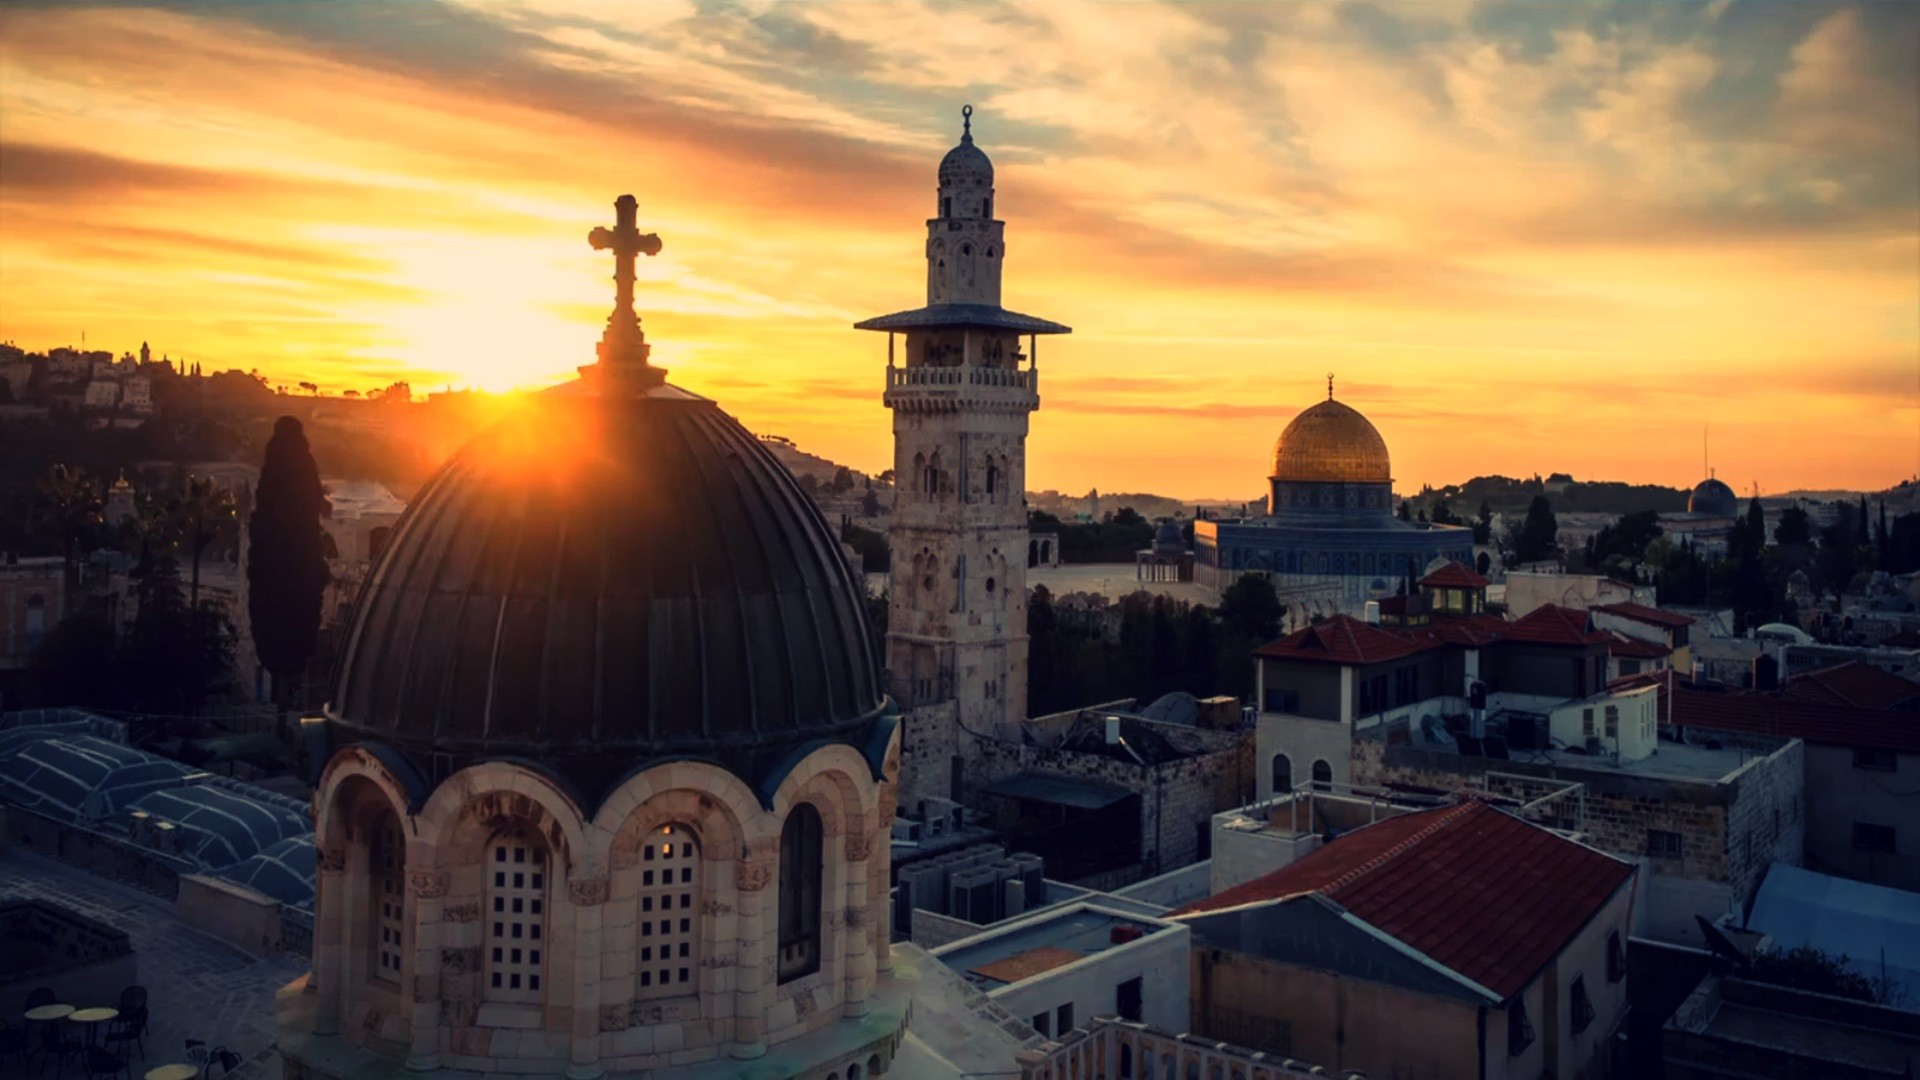 Jerusalem Wallpapers and Background Images   stmednet 1920x1080